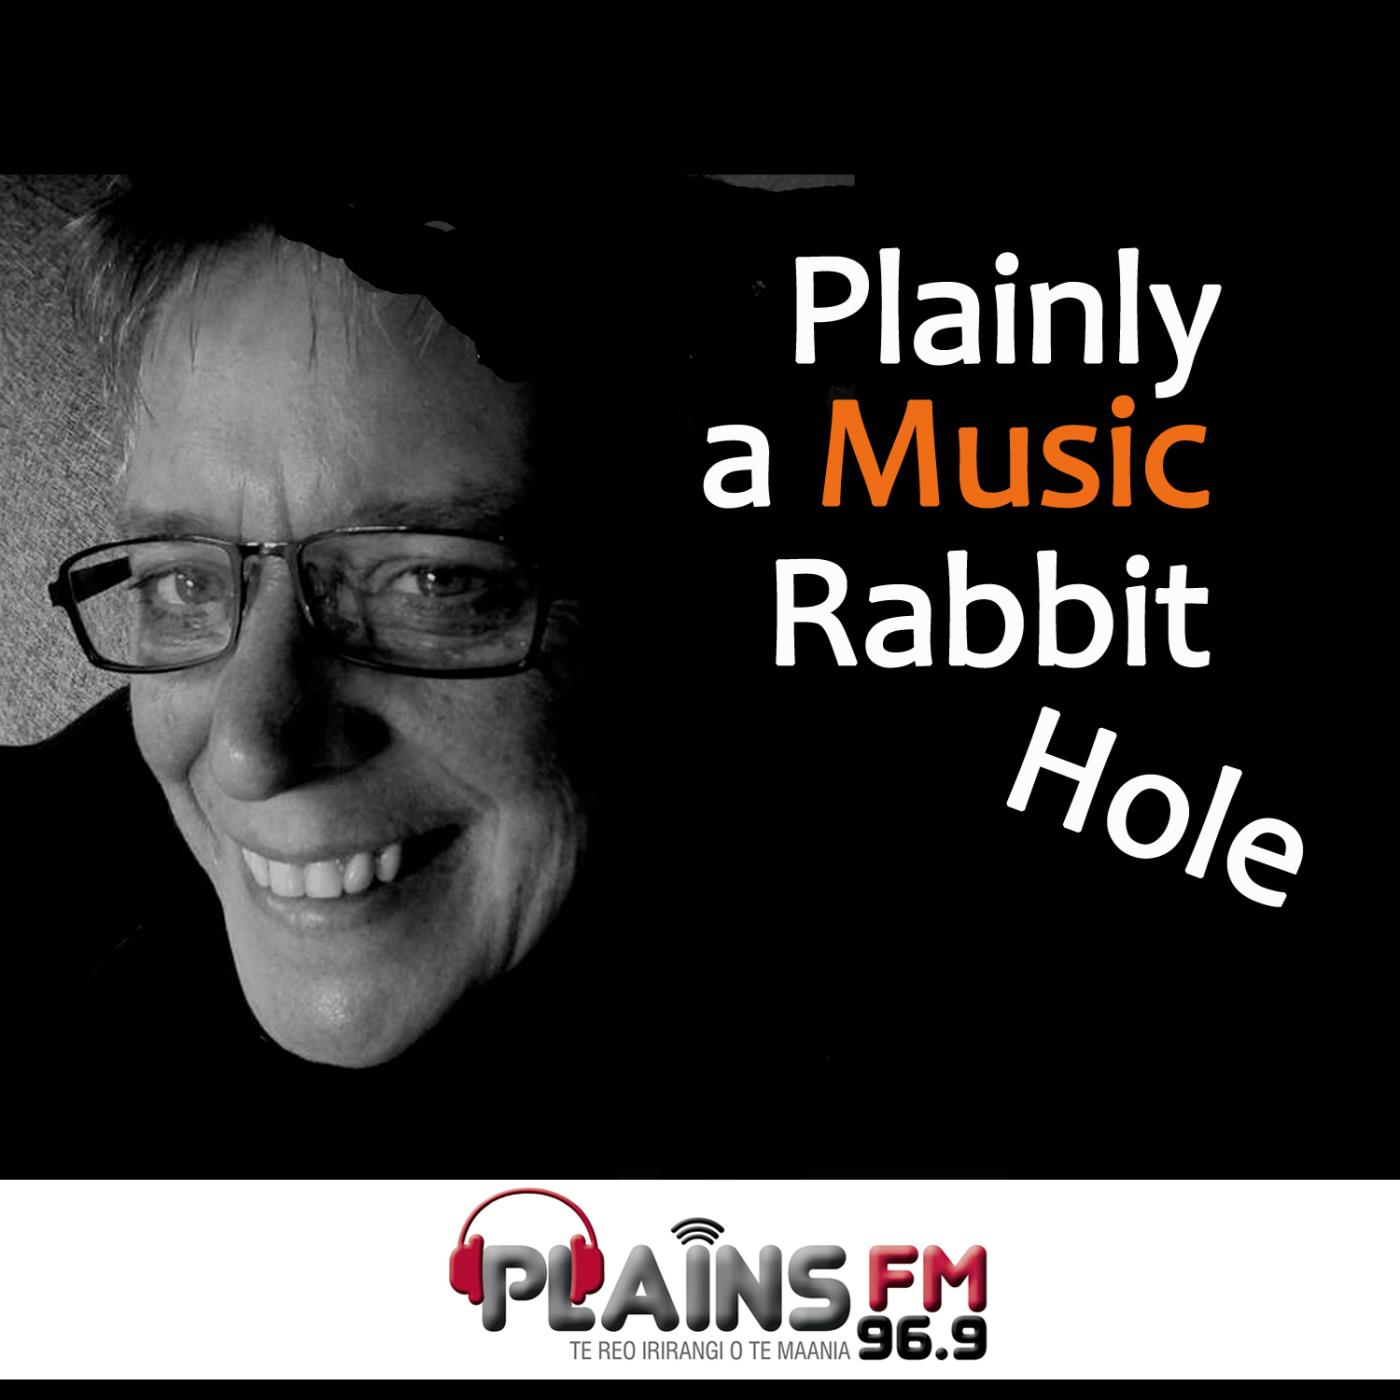 Plainly A Music Rabbit Hole - Which Musical Country?